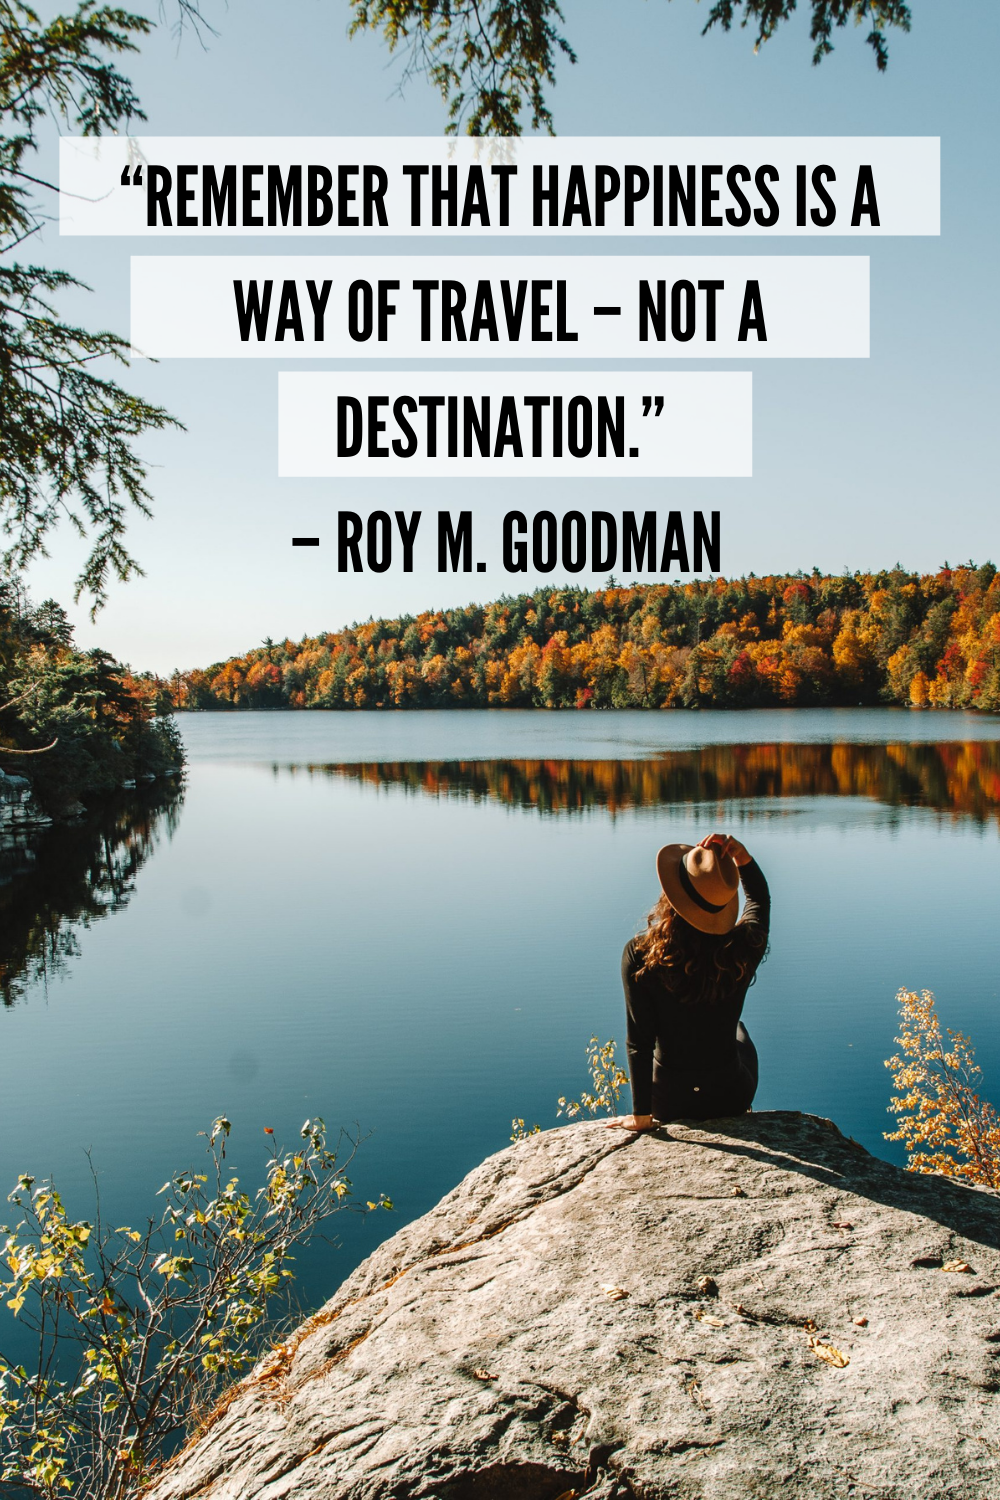 solo traveler quote by roy goodman